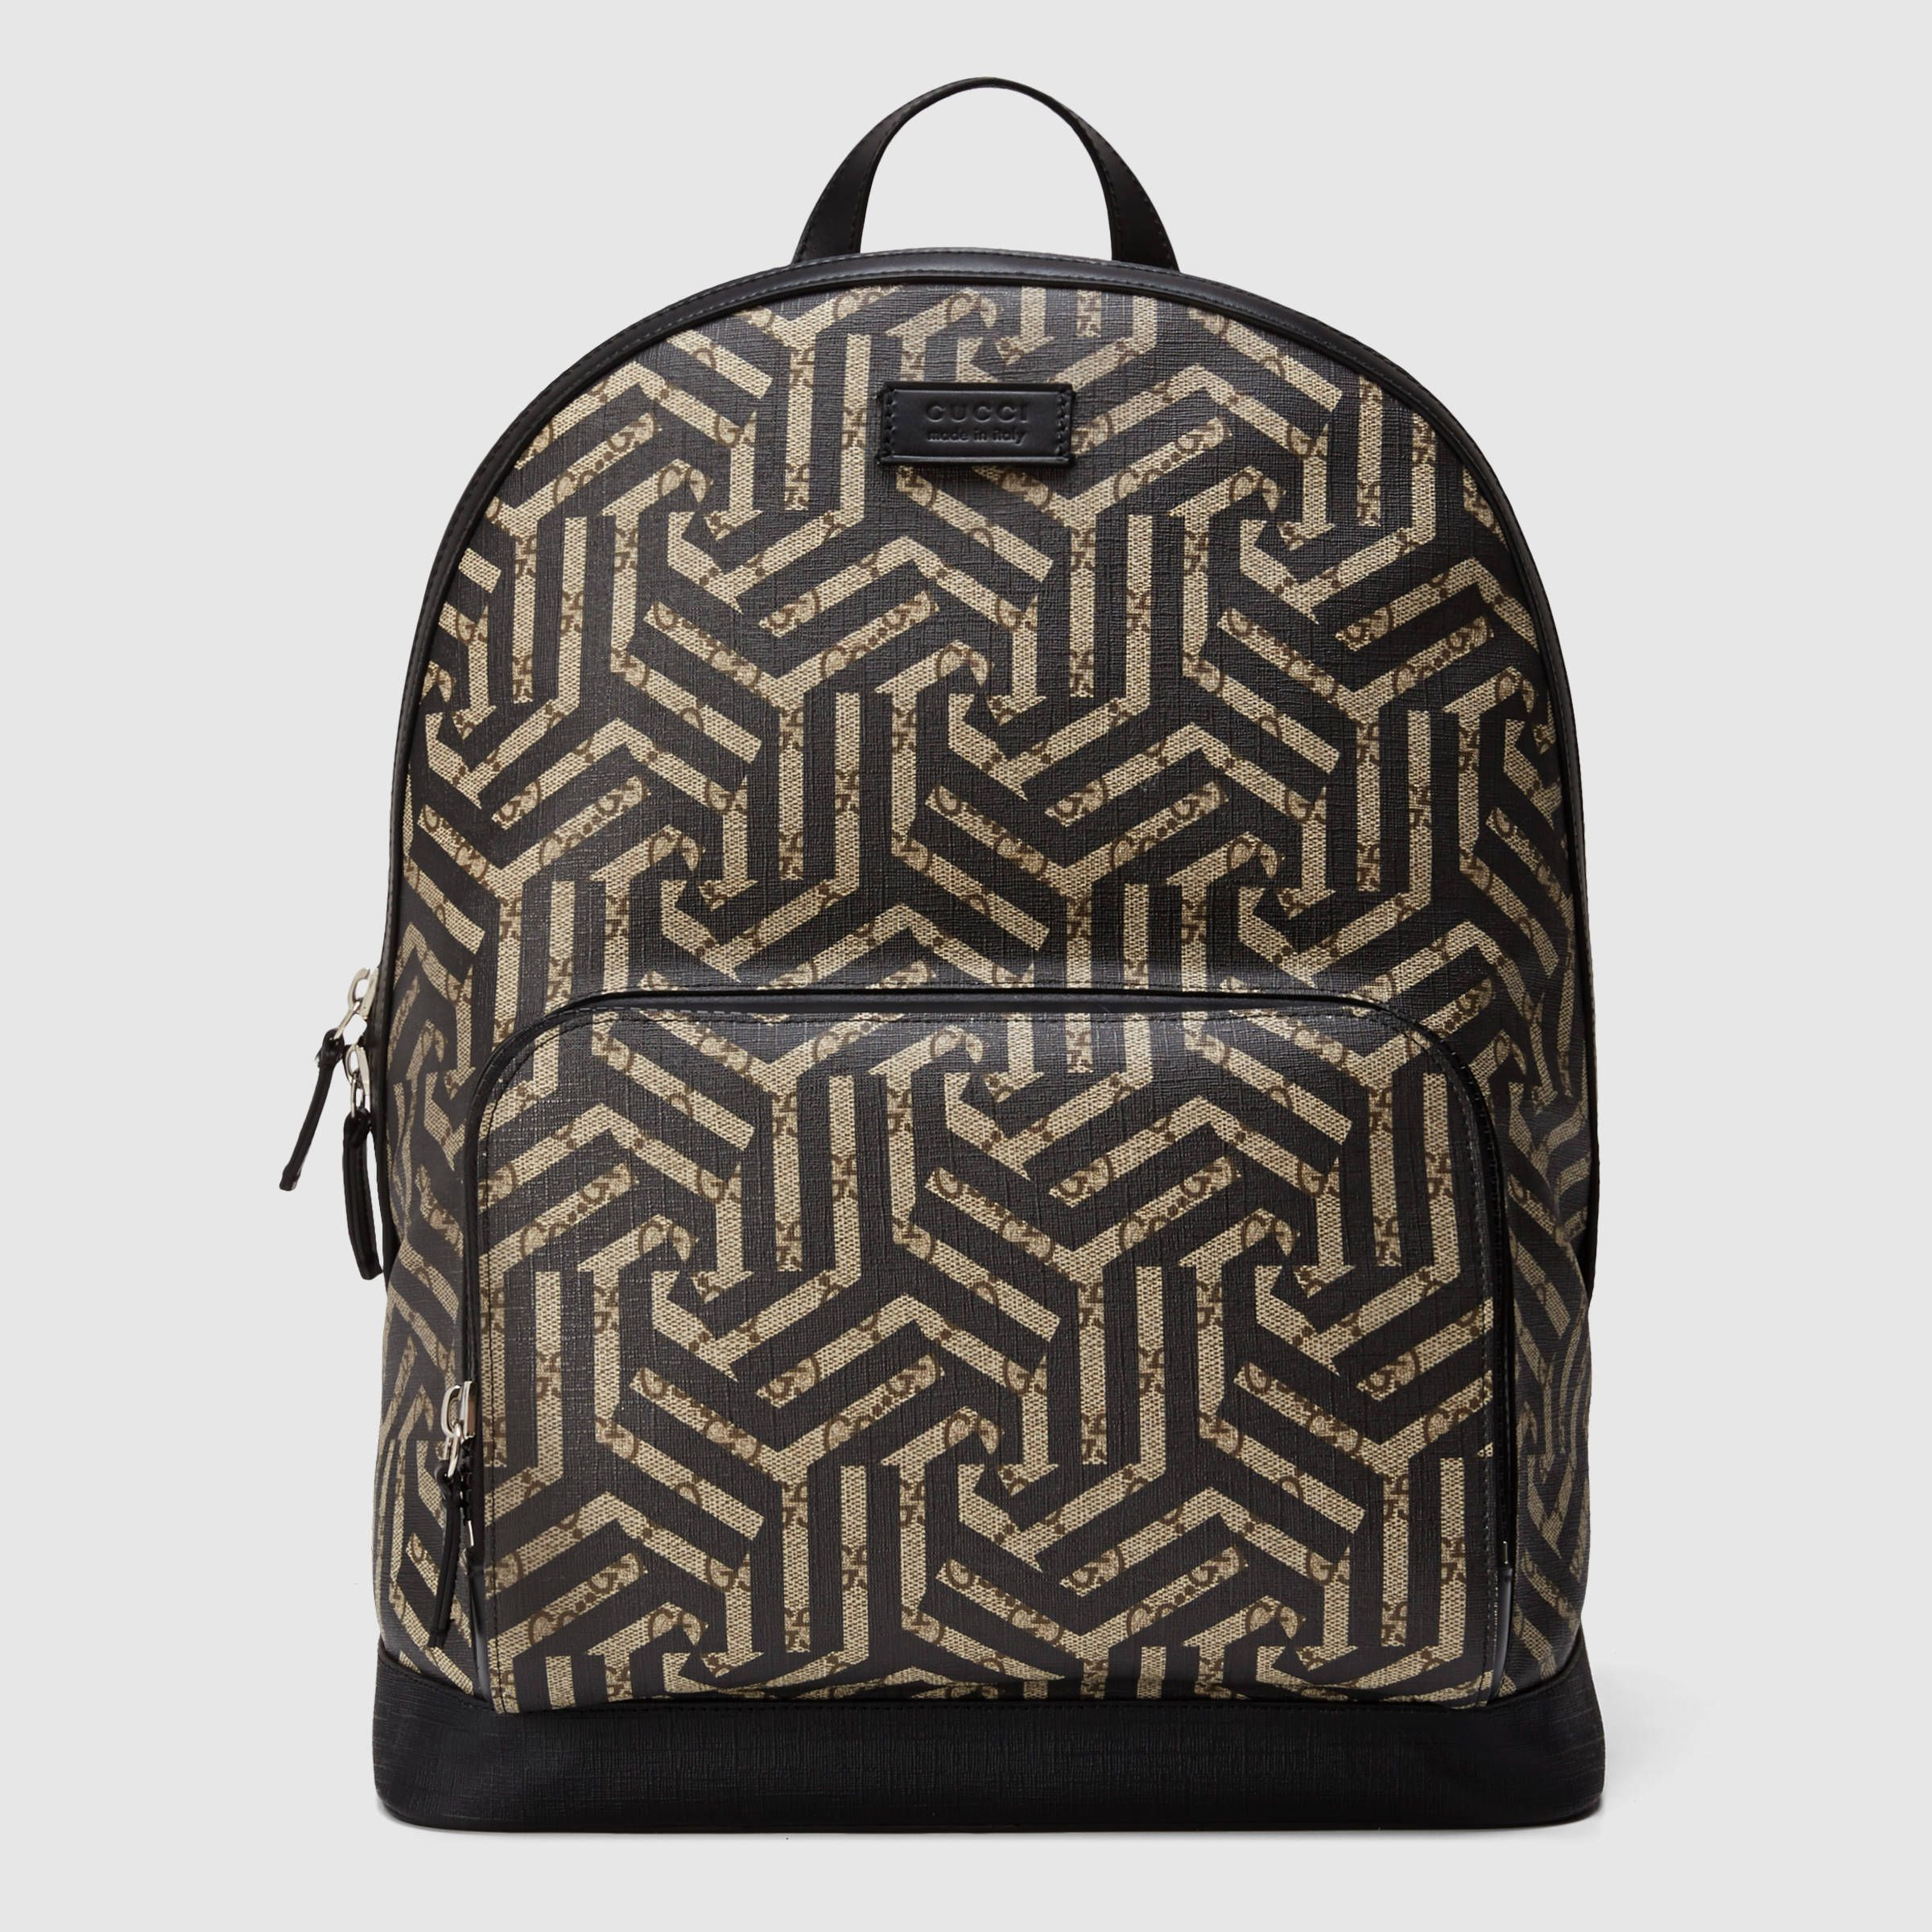 c5abb378d047 Gucci Men - GG Caleido backpack - 406370KVW3X9769 | Bags | Mens ...